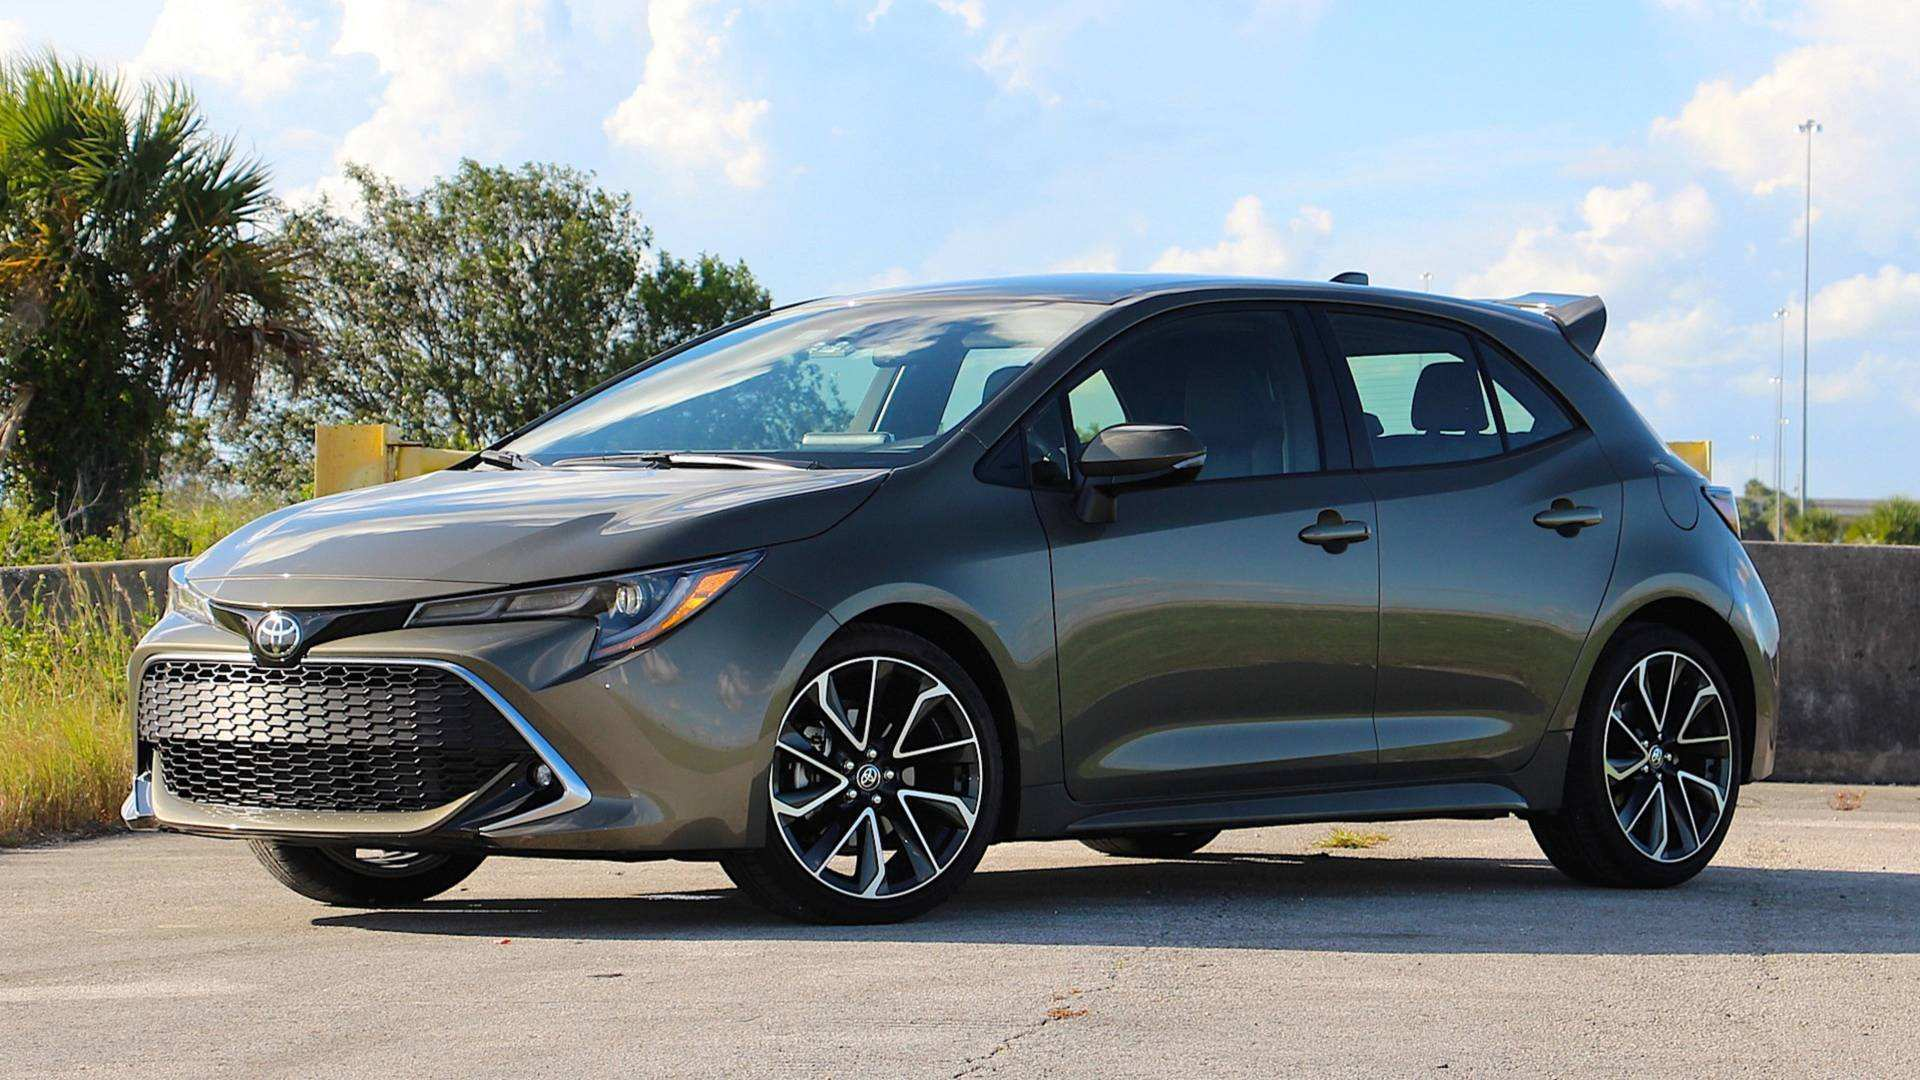 33 Best Review 2019 Model Toyota Corolla Price by 2019 Model Toyota Corolla